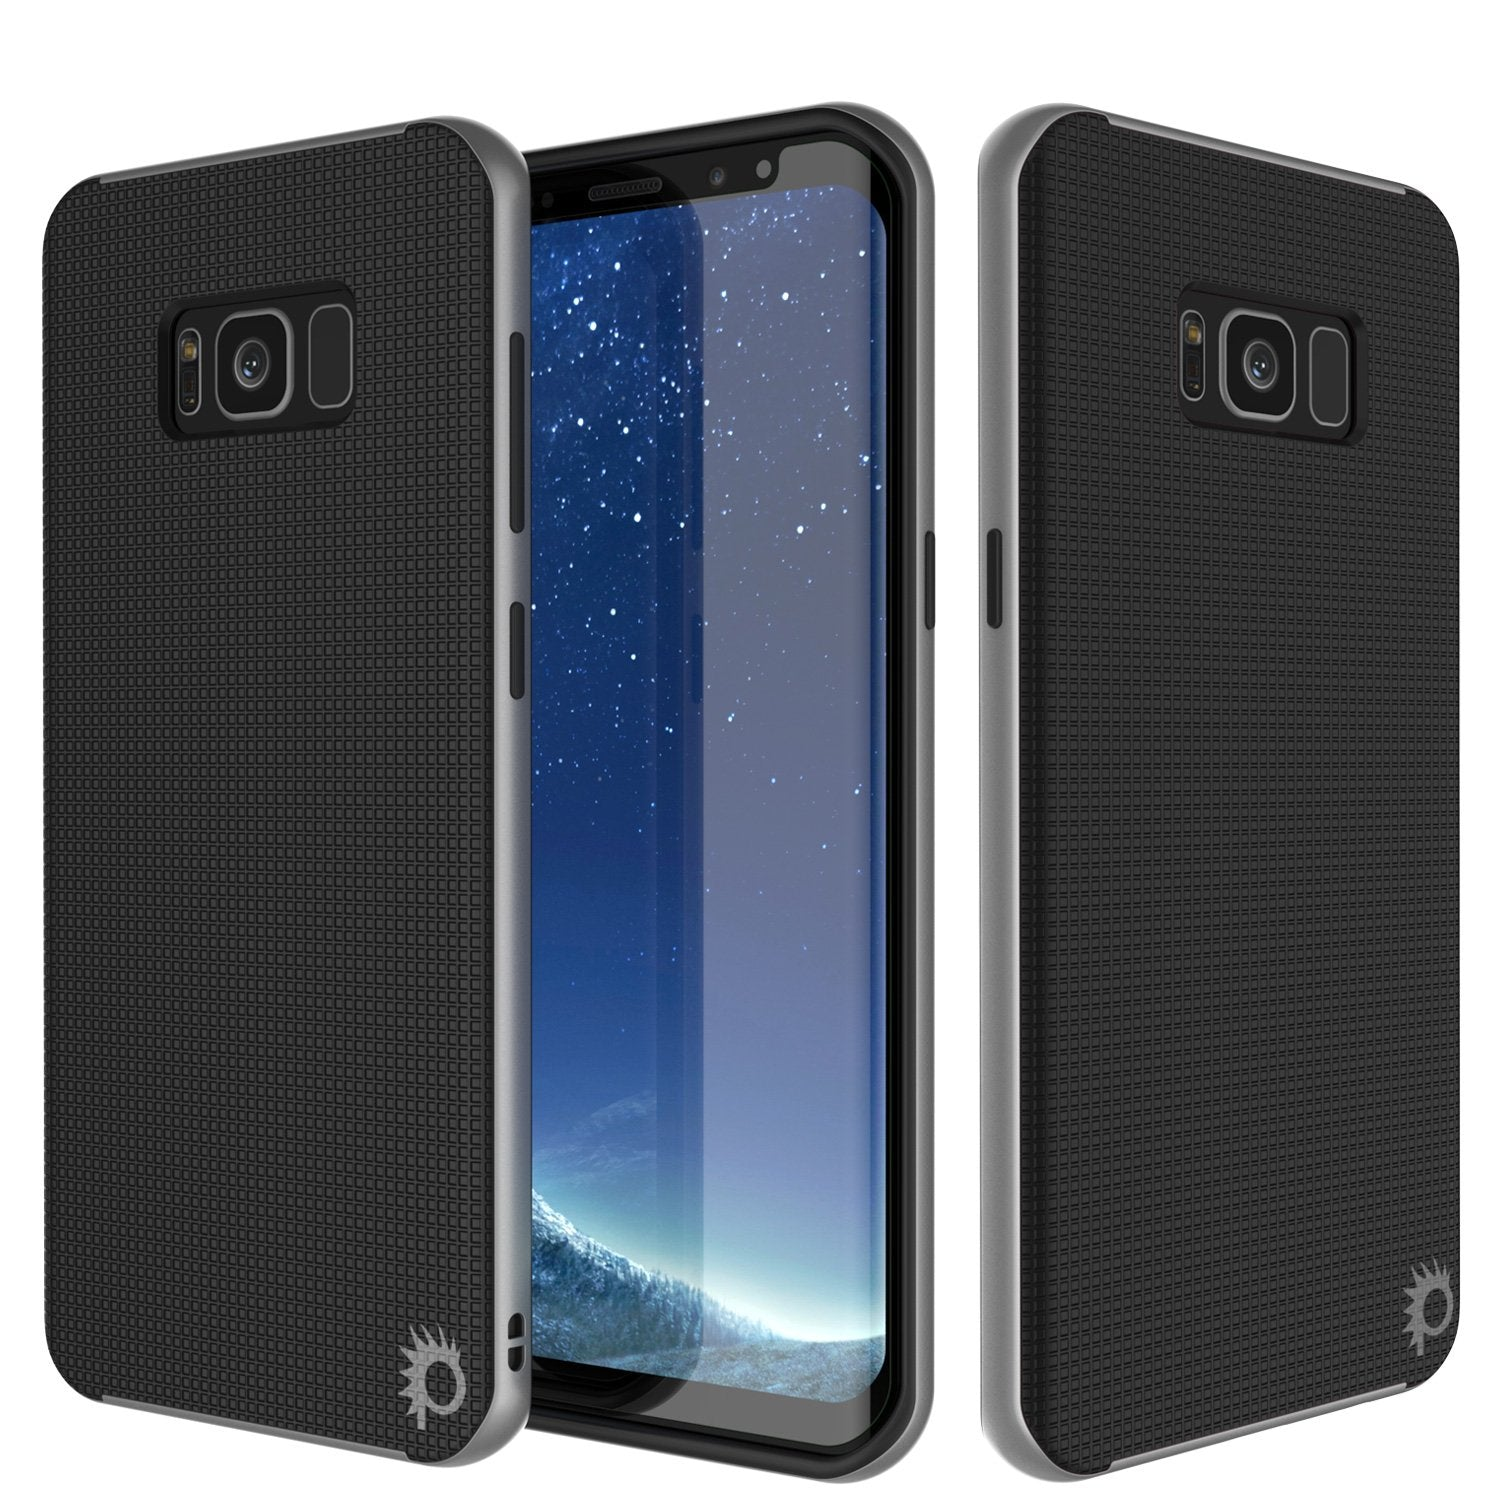 Galaxy S8 PLUS Case, PunkCase [Stealth Series] Hybrid 3-Piece Shockproof Dual Layer Cover [Non-Slip] [Soft TPU + PC Bumper] with PUNKSHIELD Screen Protector for Samsung S8+ [Silver] - PunkCase NZ